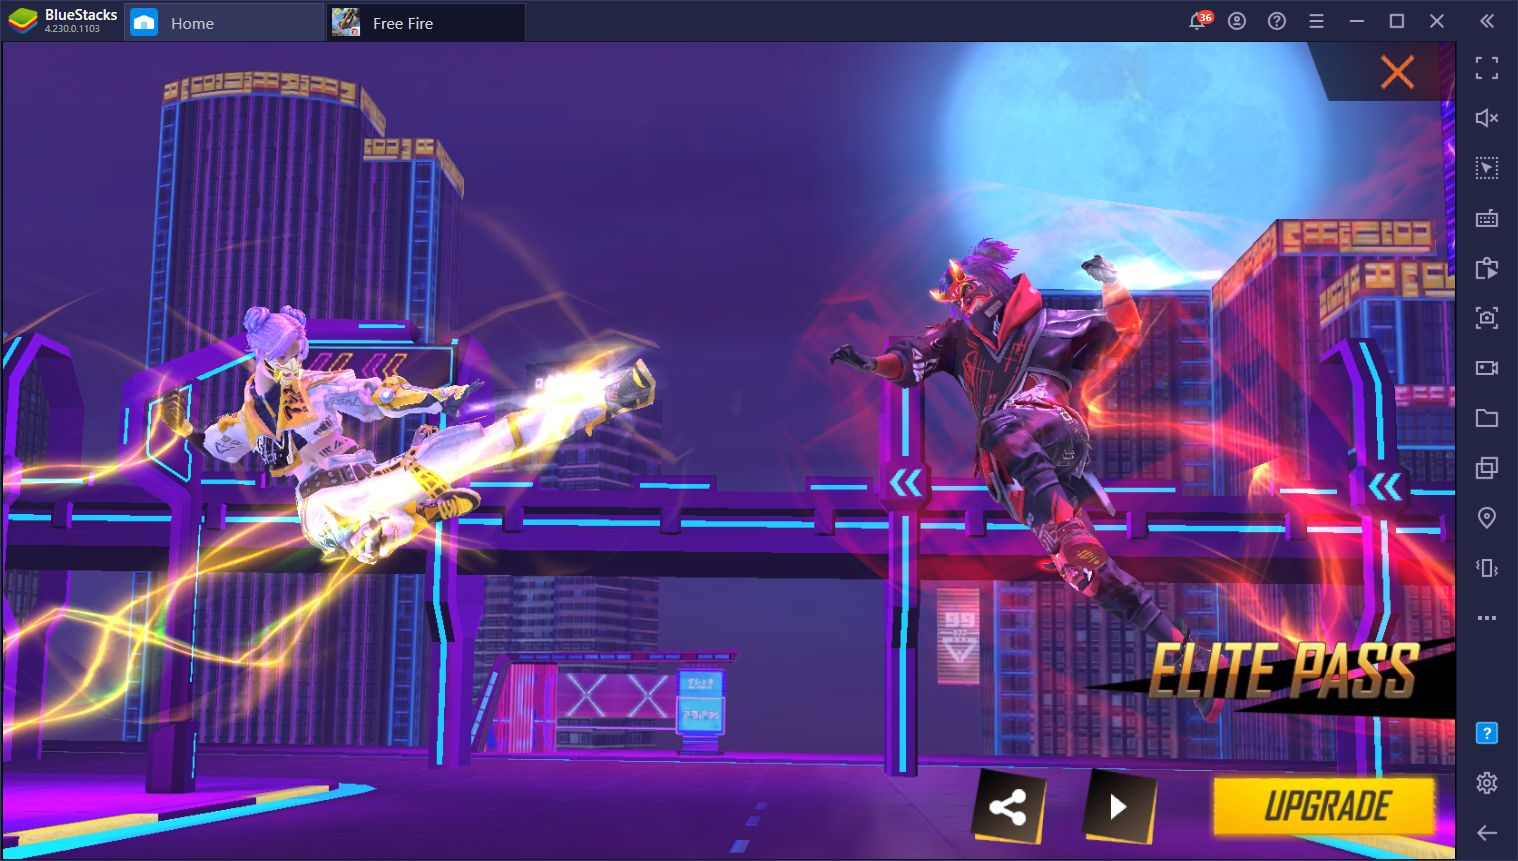 New Free Fire 'Celestial Street' Elite Pass – New Missions, Rewards, and Awesome Outfits